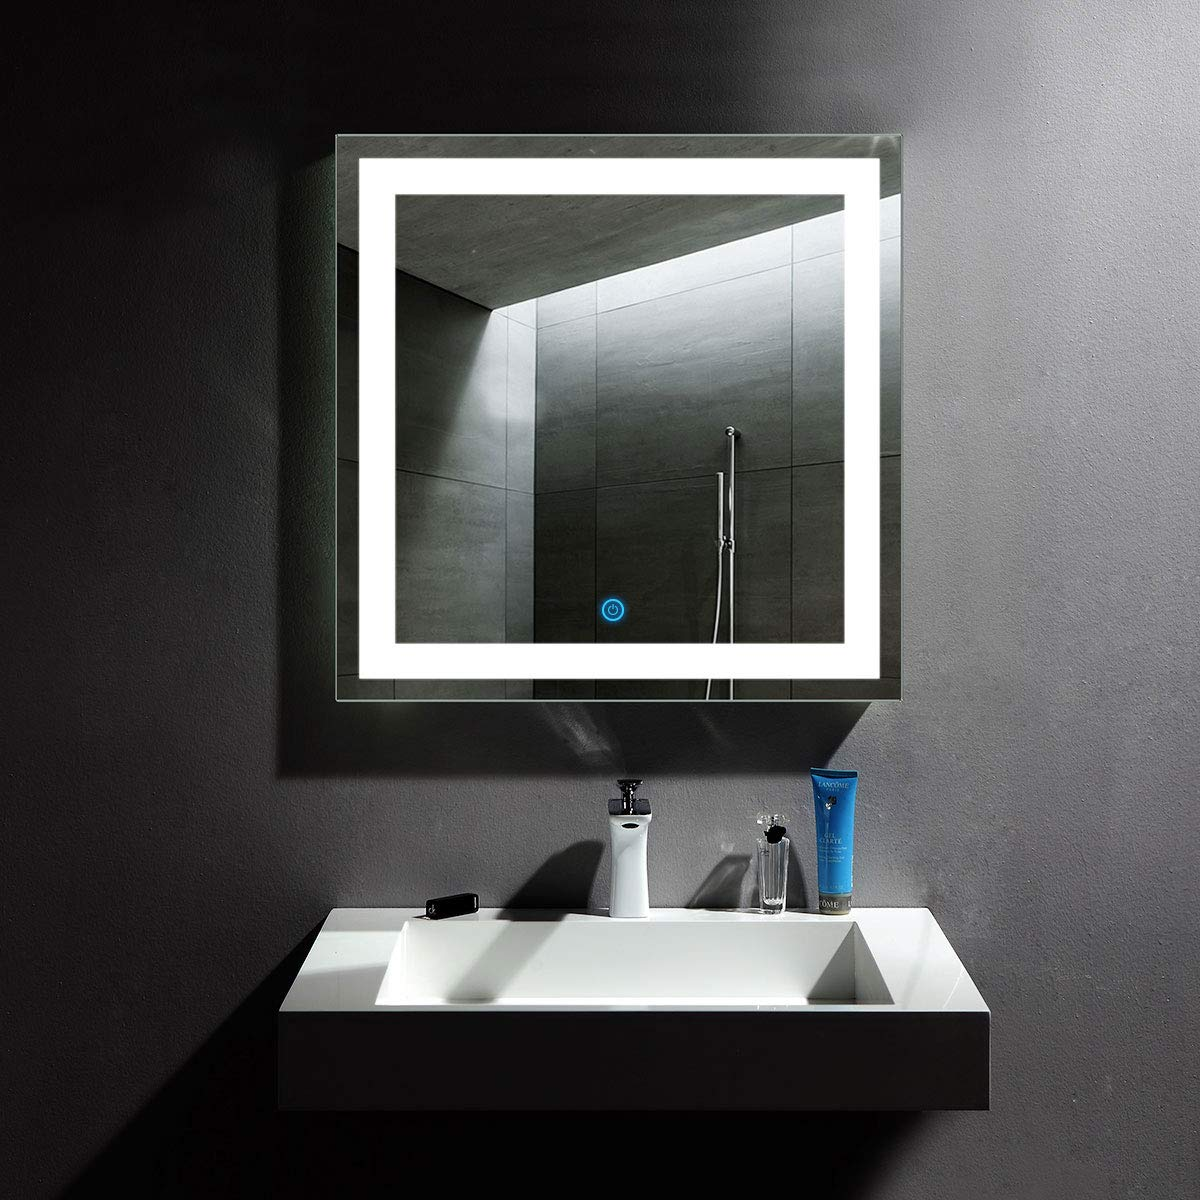 DP Home Modern Square LED Backlit Mirror, Wall Mounted Lighted Makeup, Bathroom Illuminated Vanity Mirrors for Wall, 32 x 32 in E-CK010-F